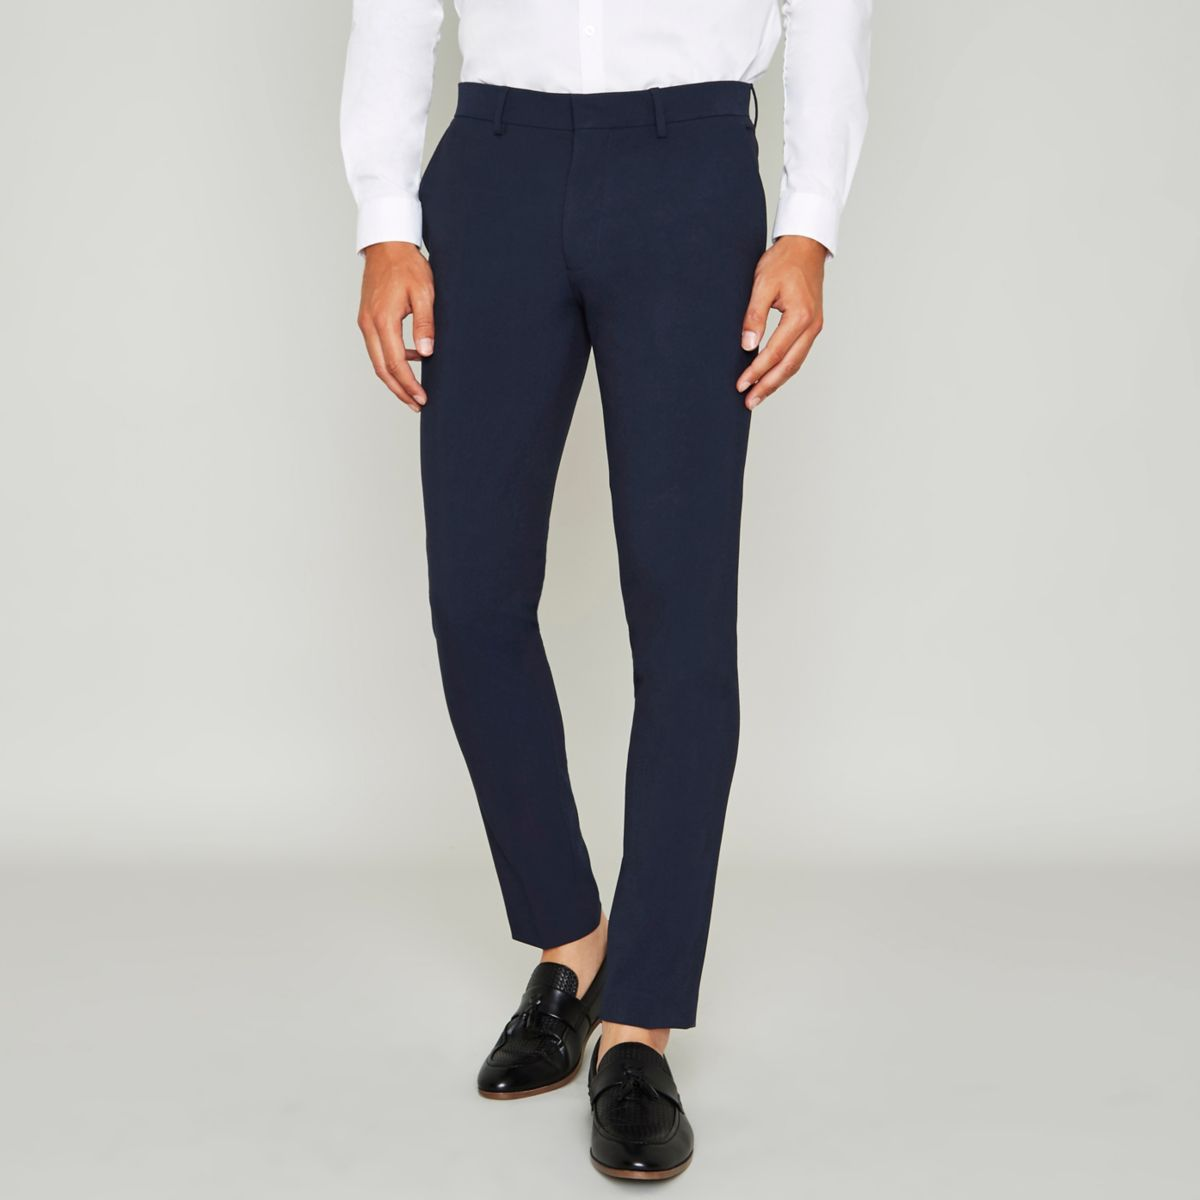 Blue super skinny suit pants